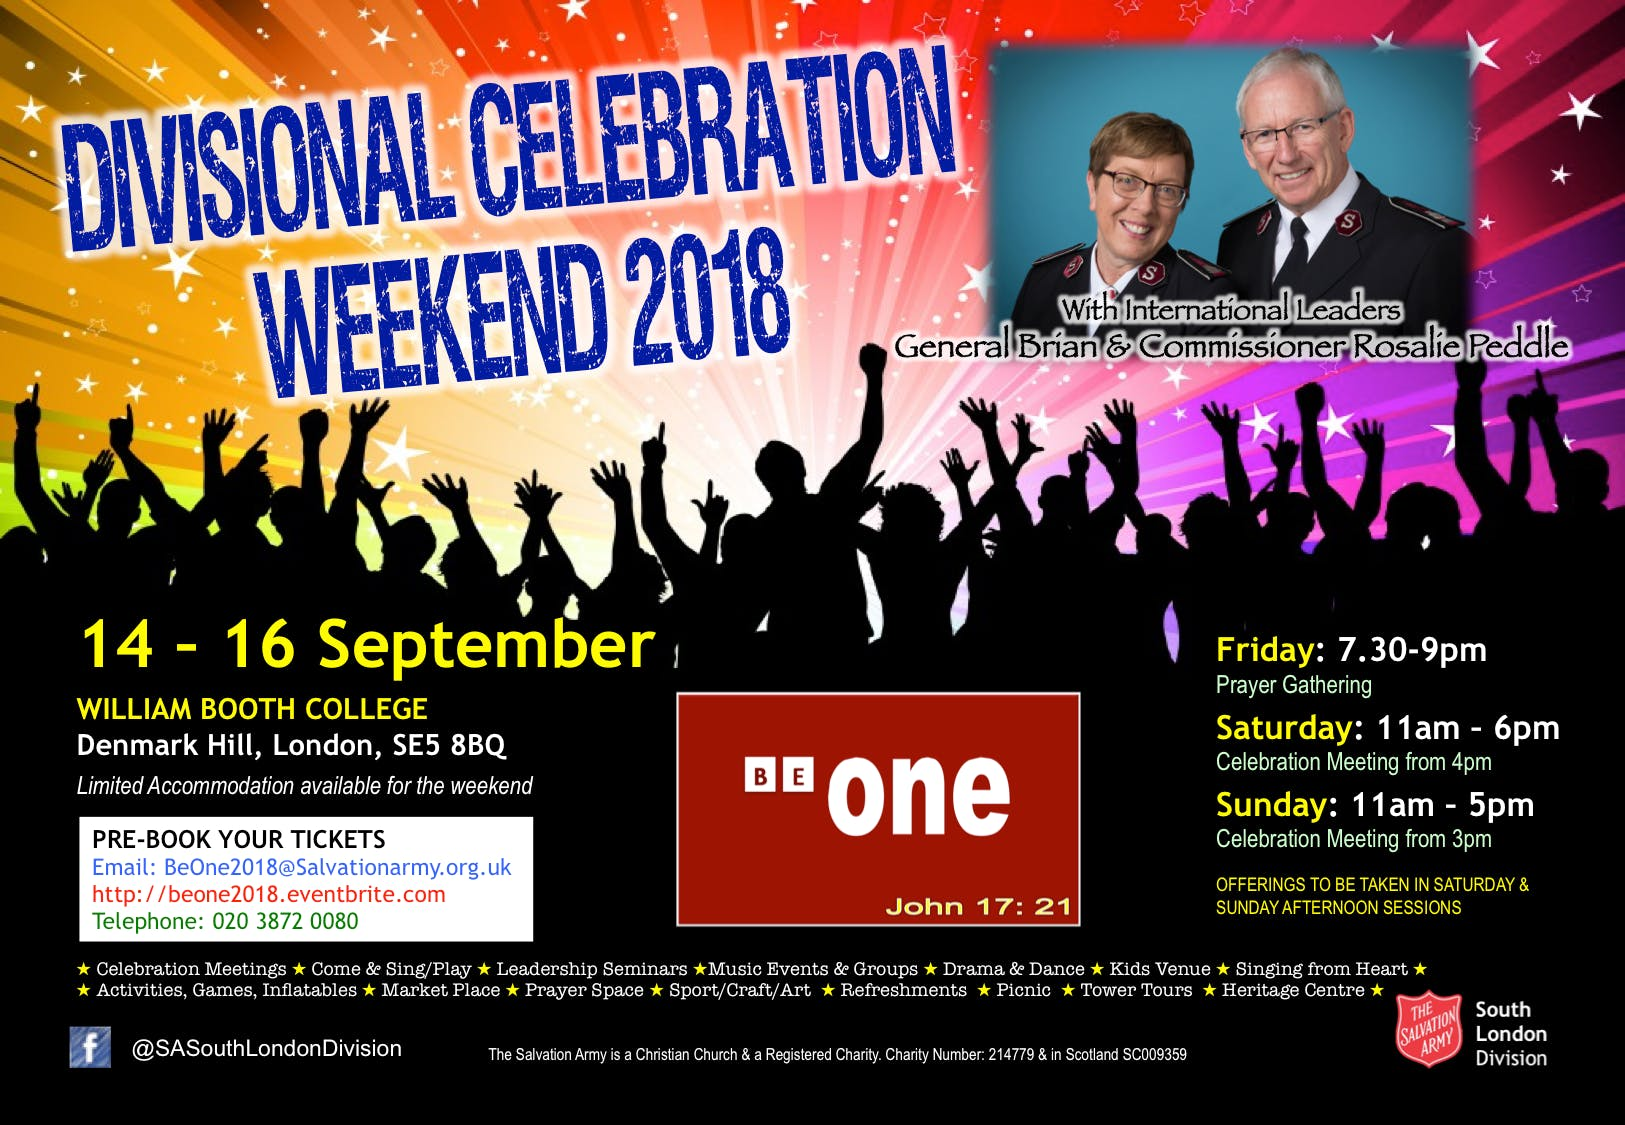 Divisional Celebration Weekend - BeOne